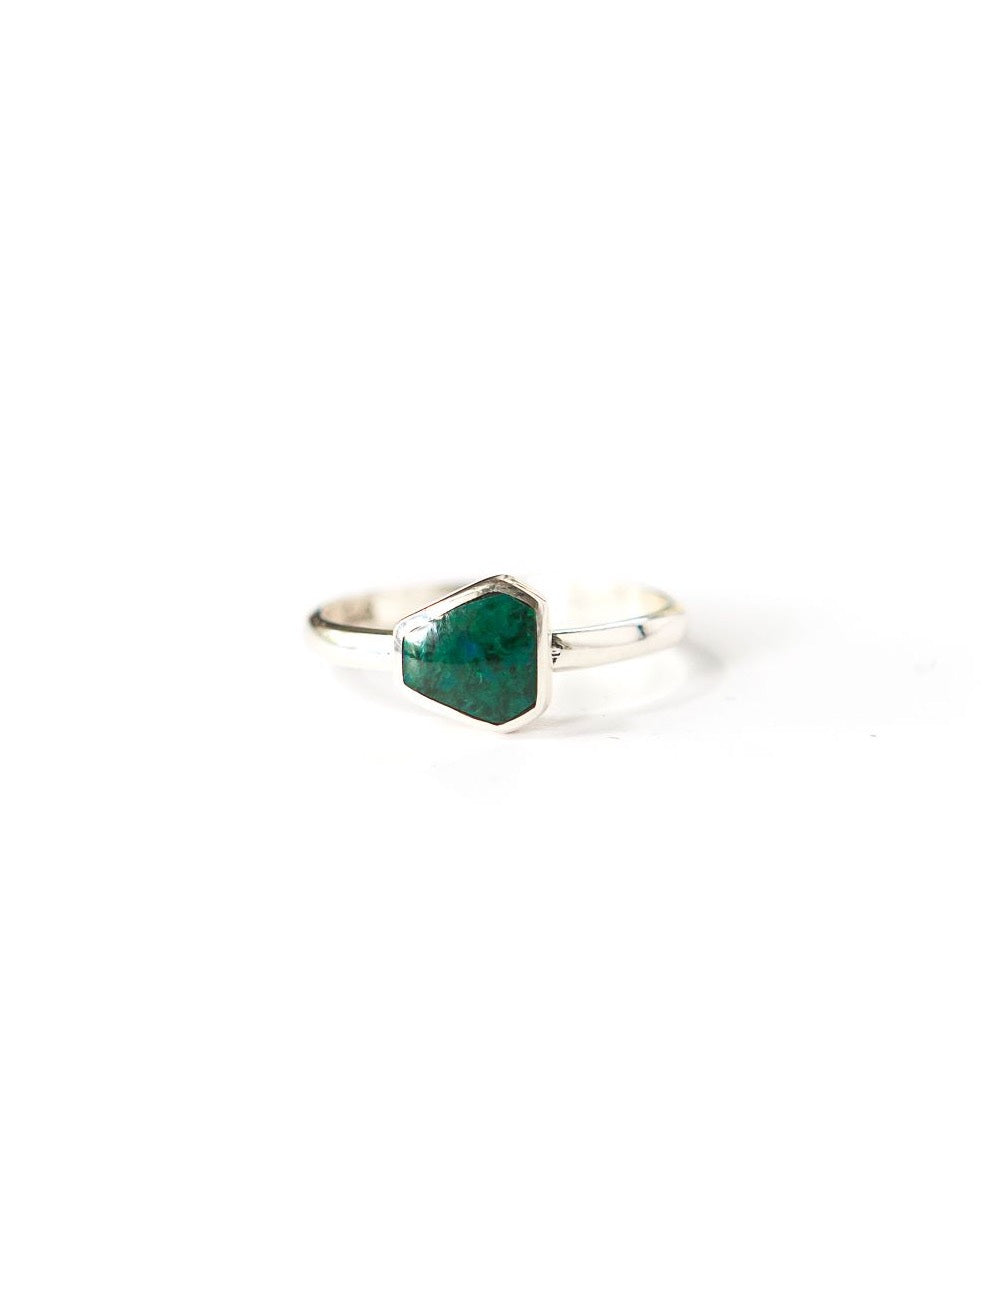 Geometric Stone Ring - Sterling with Sea Green Chrysocolla